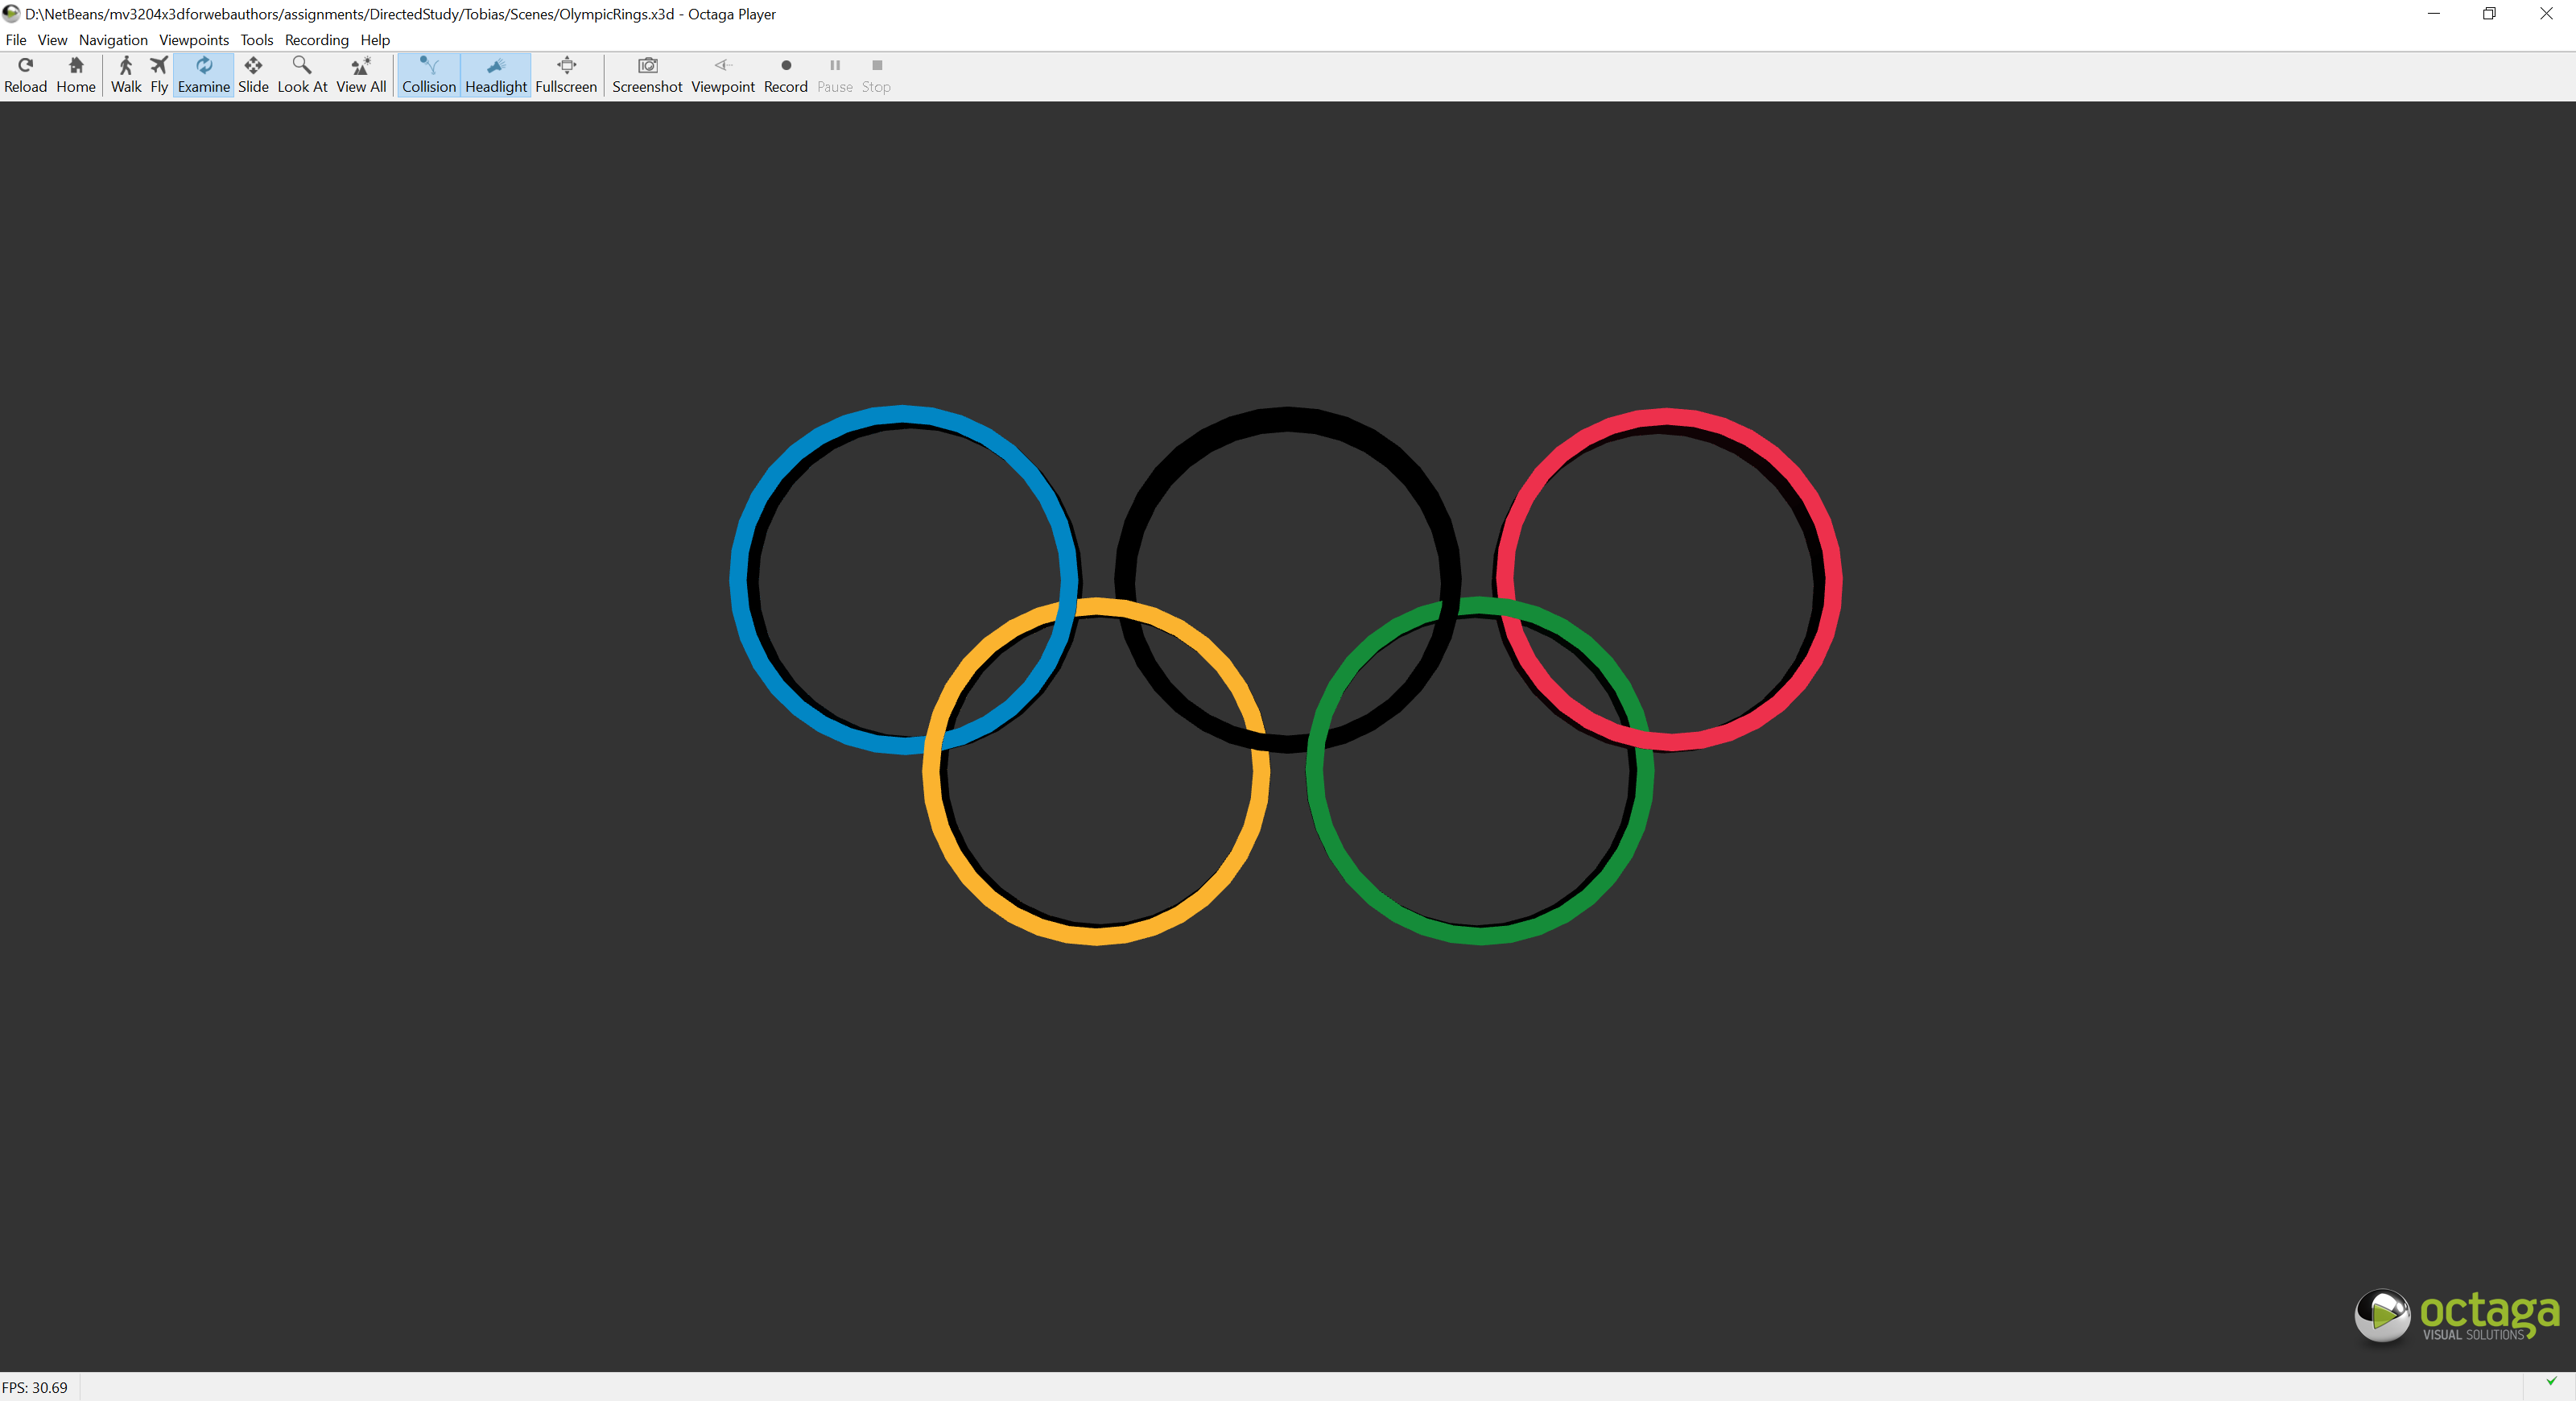 BrennenstuhlTobias/Screenshots/Player/Olympic Rings/OlympicRings.Octaga.png